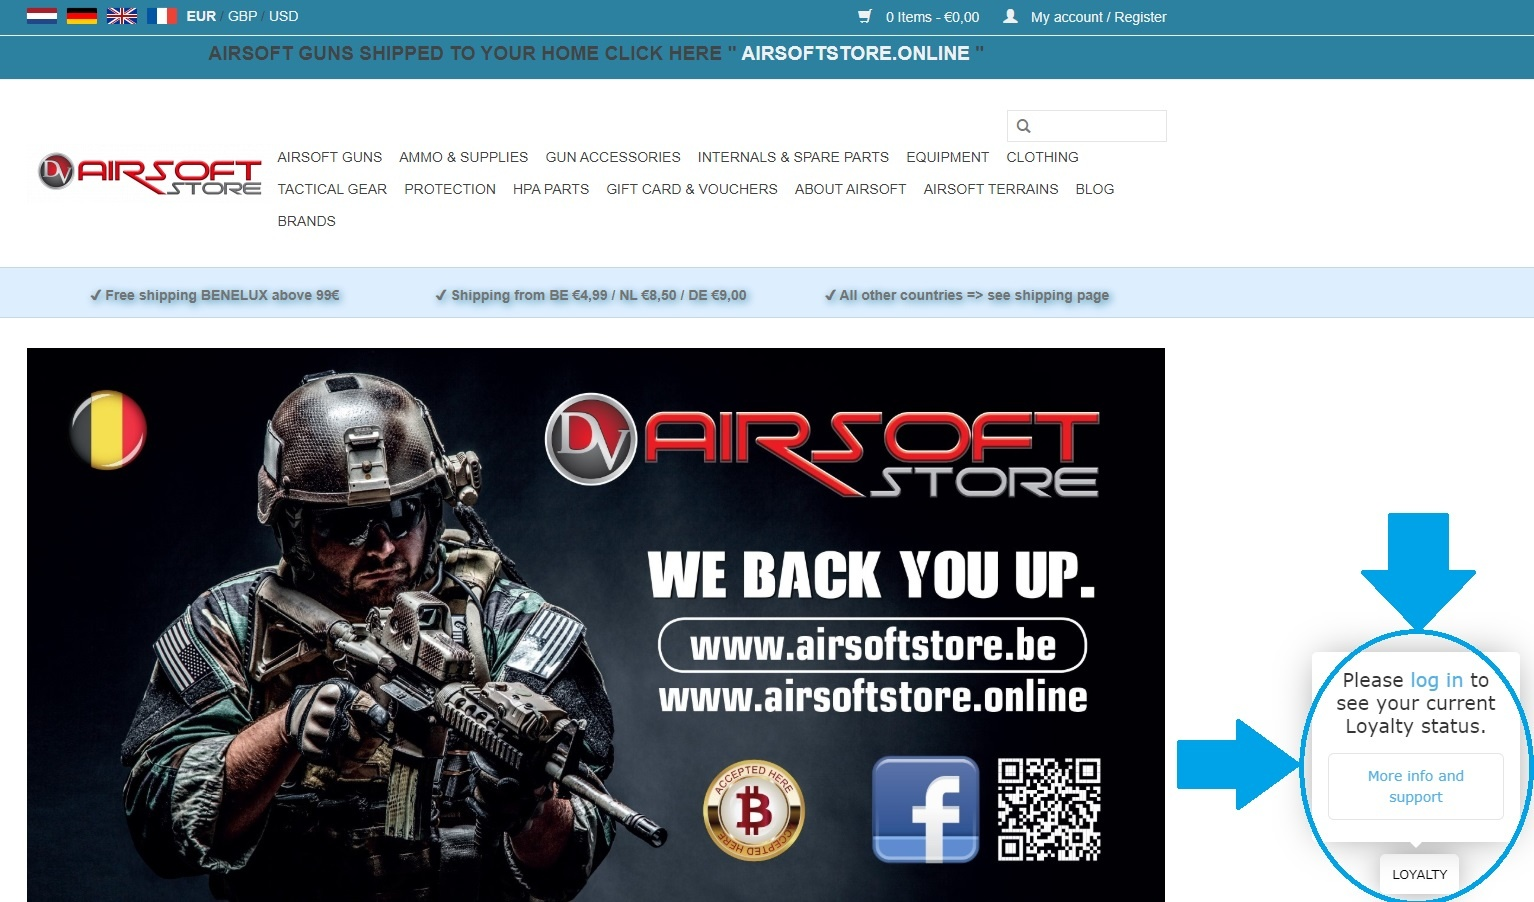 Airsoft Store Loyalty Points Log In